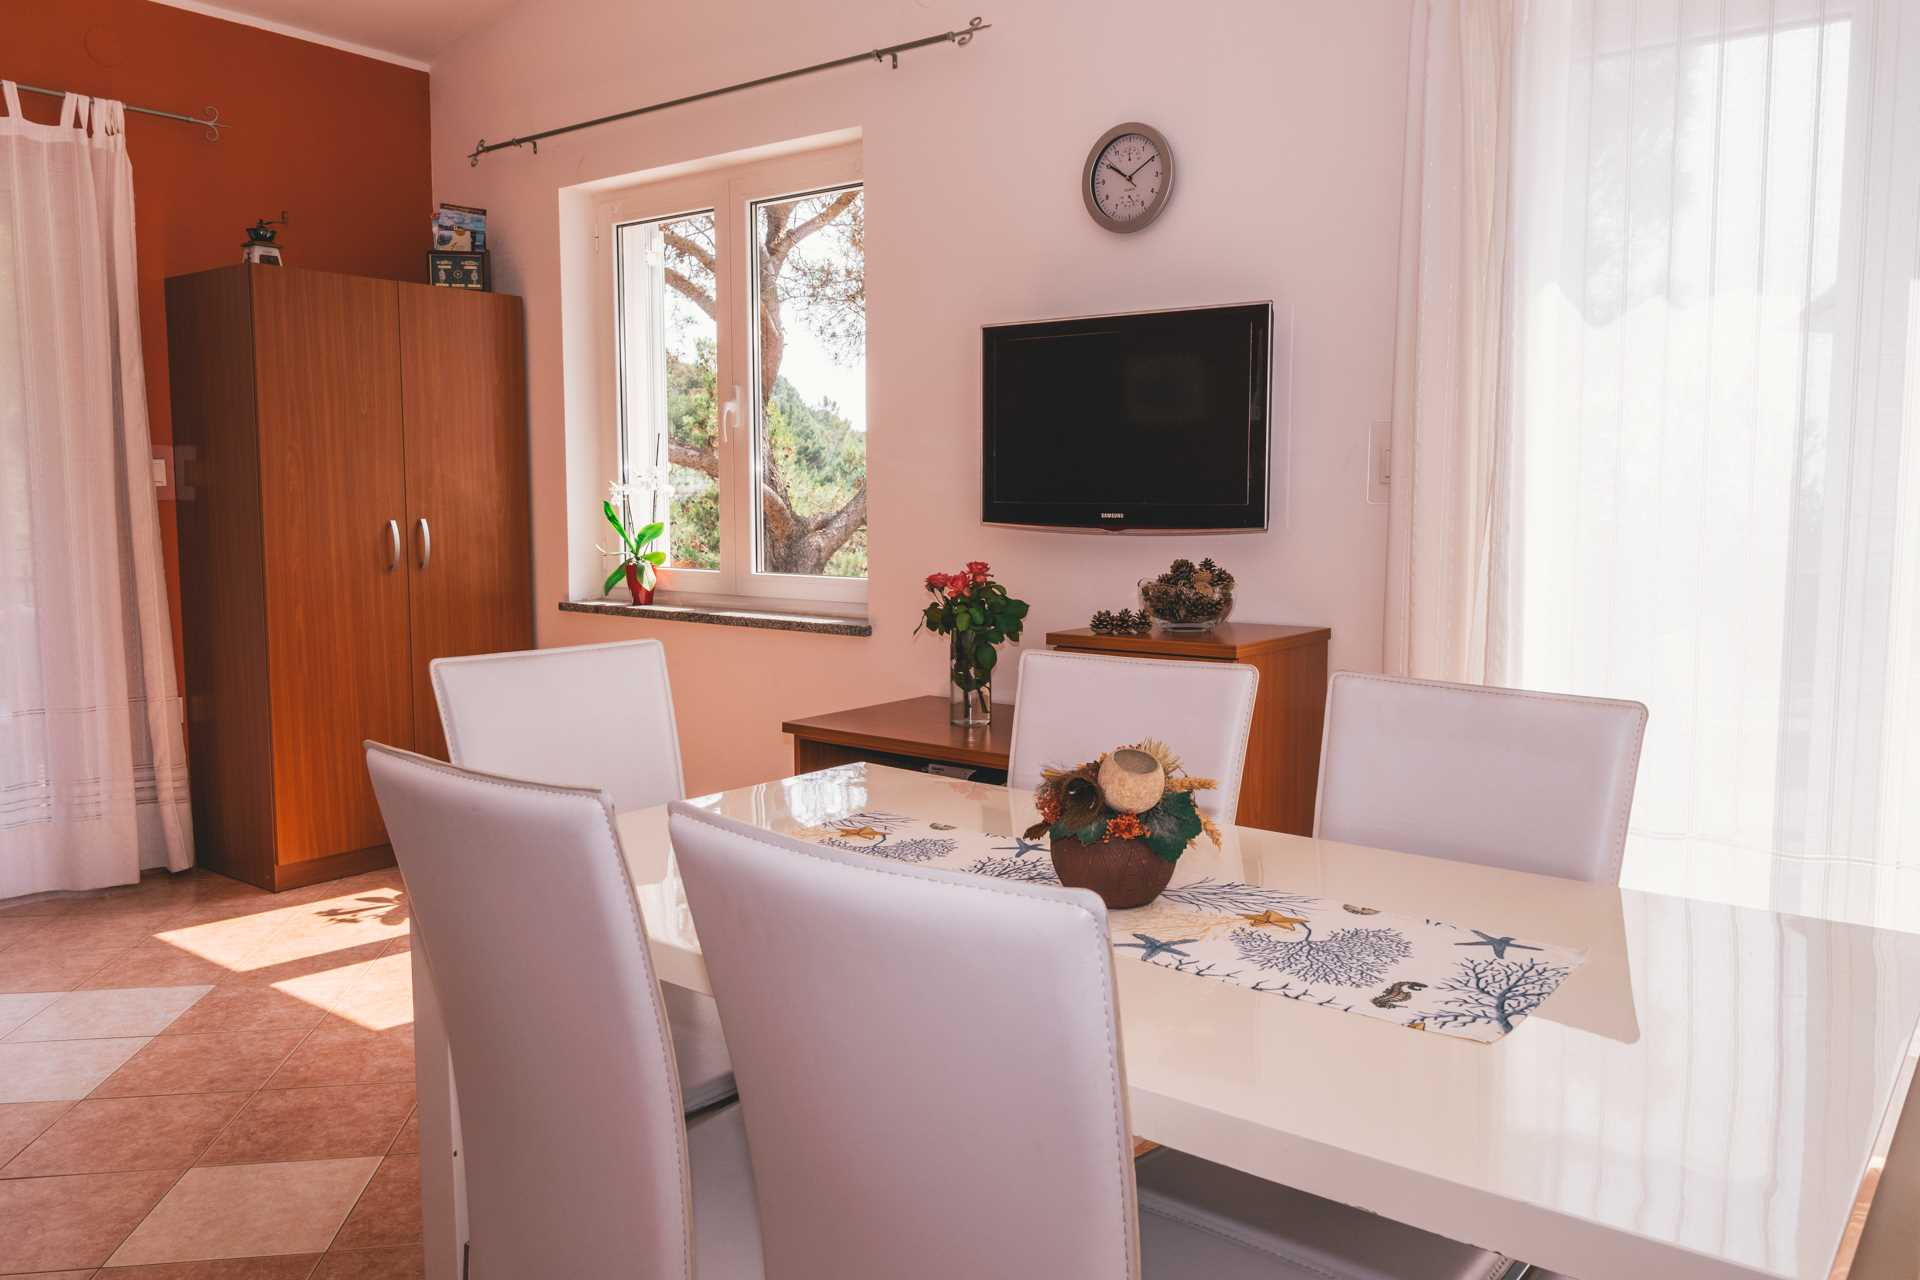 Ferienwohnungen Top floor apartment in Villa Majda, Brseč 12639, Brseč, , Kvarner Region